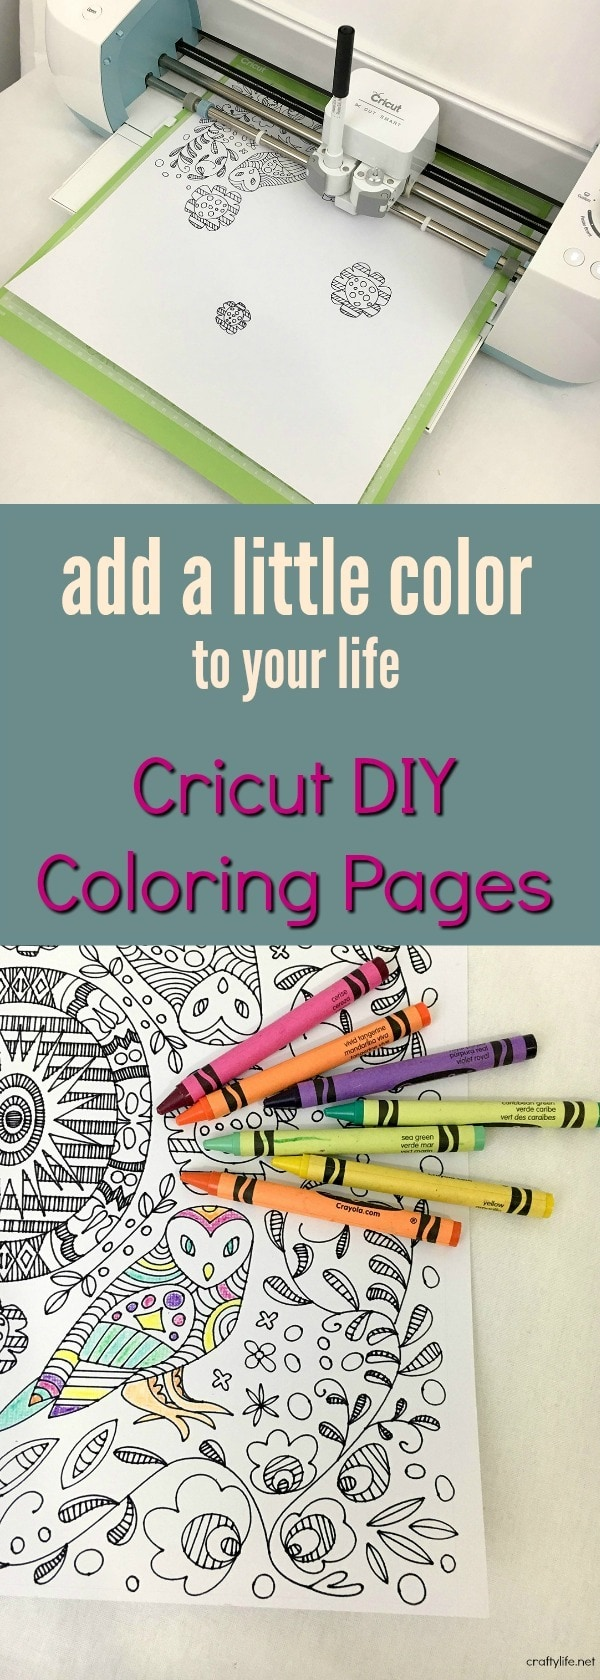 You don't need to make a trip to the store to get an adult coloring book, use your Cricut! Take inspiration from the colors in your house or your crayon box.